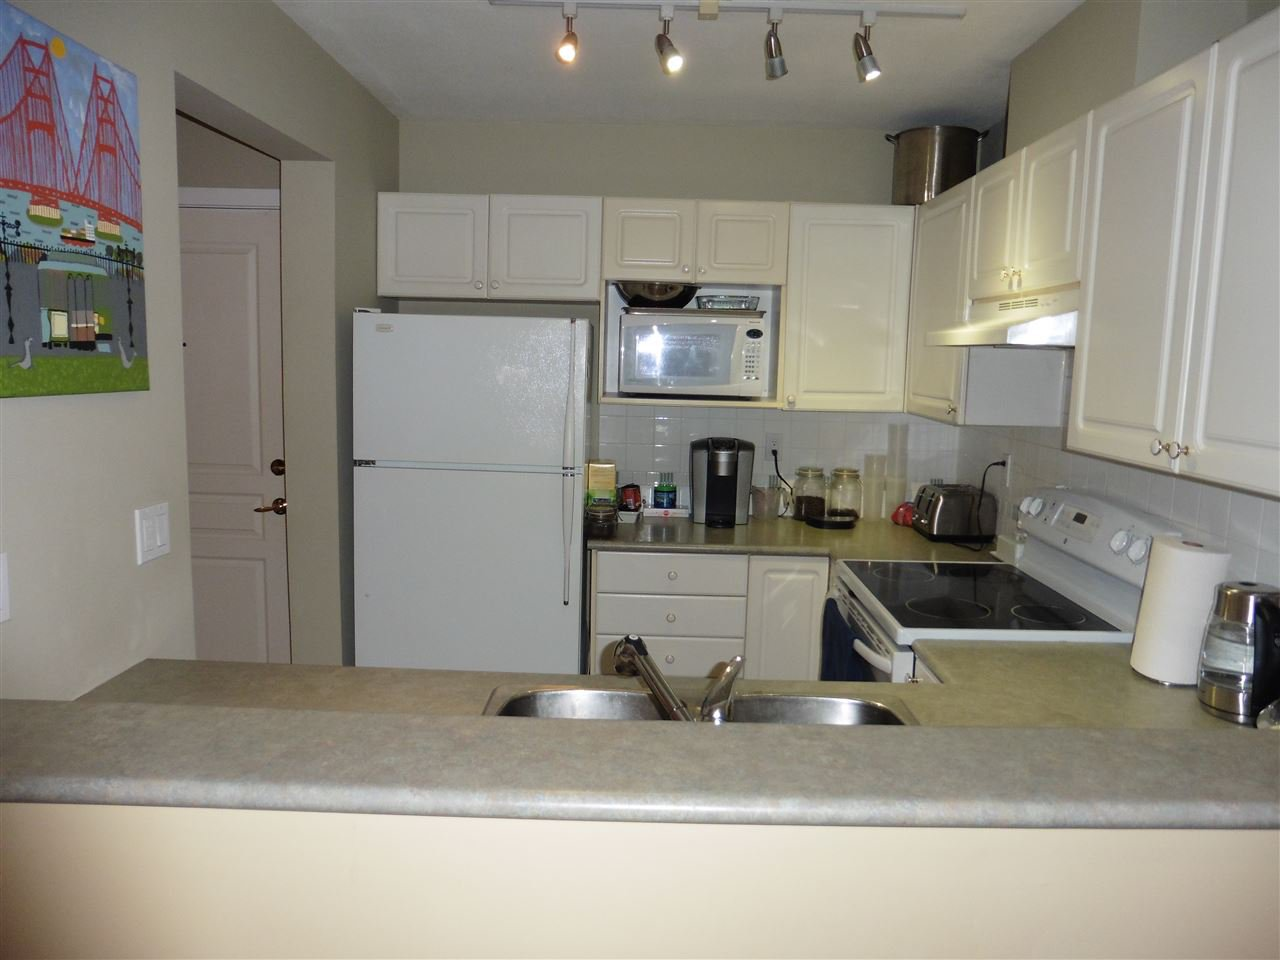 """Photo 8: Photos: 506 210 ELEVENTH Street in New Westminster: Uptown NW Condo for sale in """"DISCOVERY REACH"""" : MLS®# R2434040"""